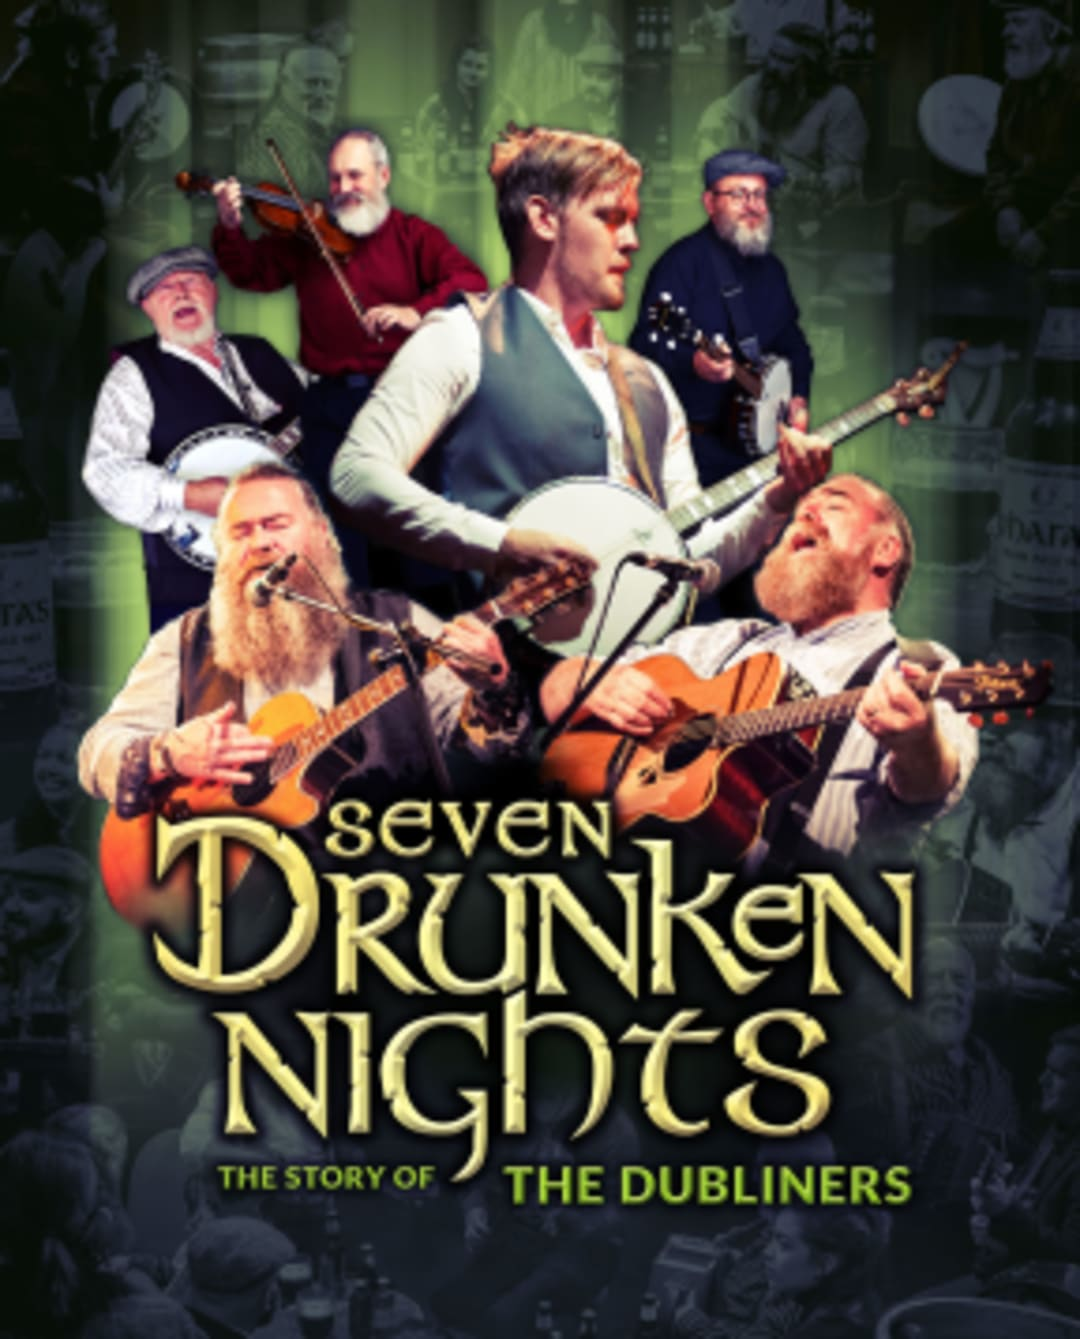 Seven Drunken Nights - The Story of the Dubliners at Grand Opera House York